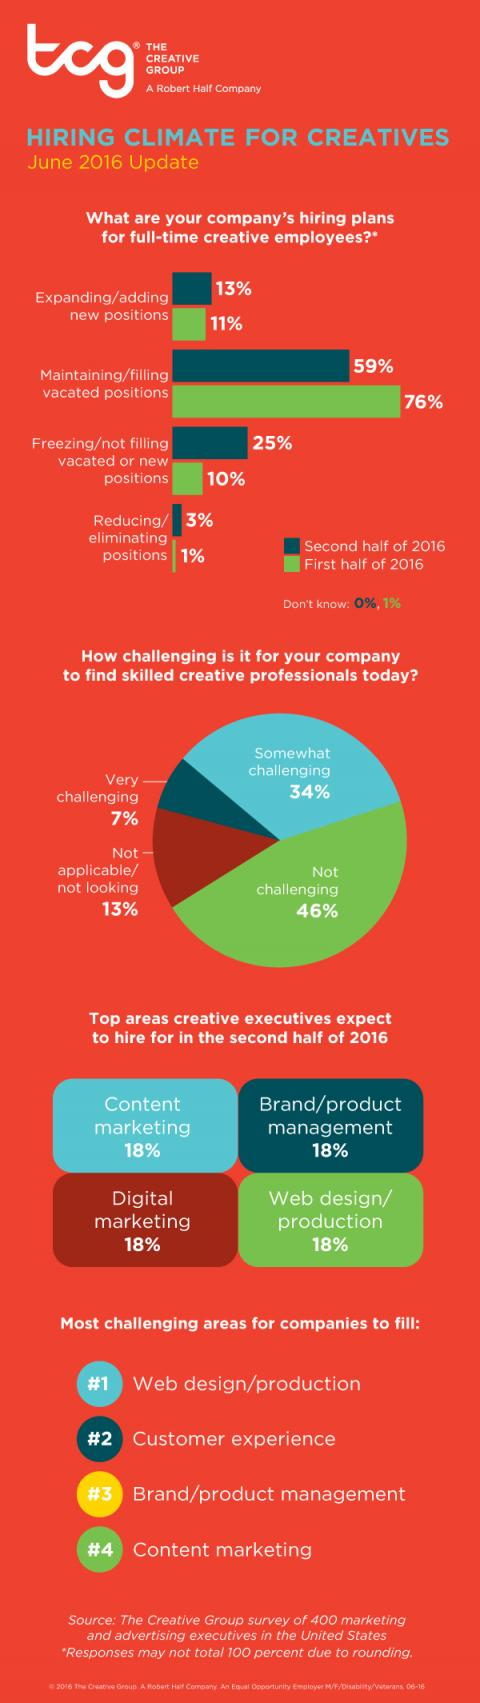 An infographic from The Creative Group gives an update on the hiring climate for creative professionals in the second half of 2016.